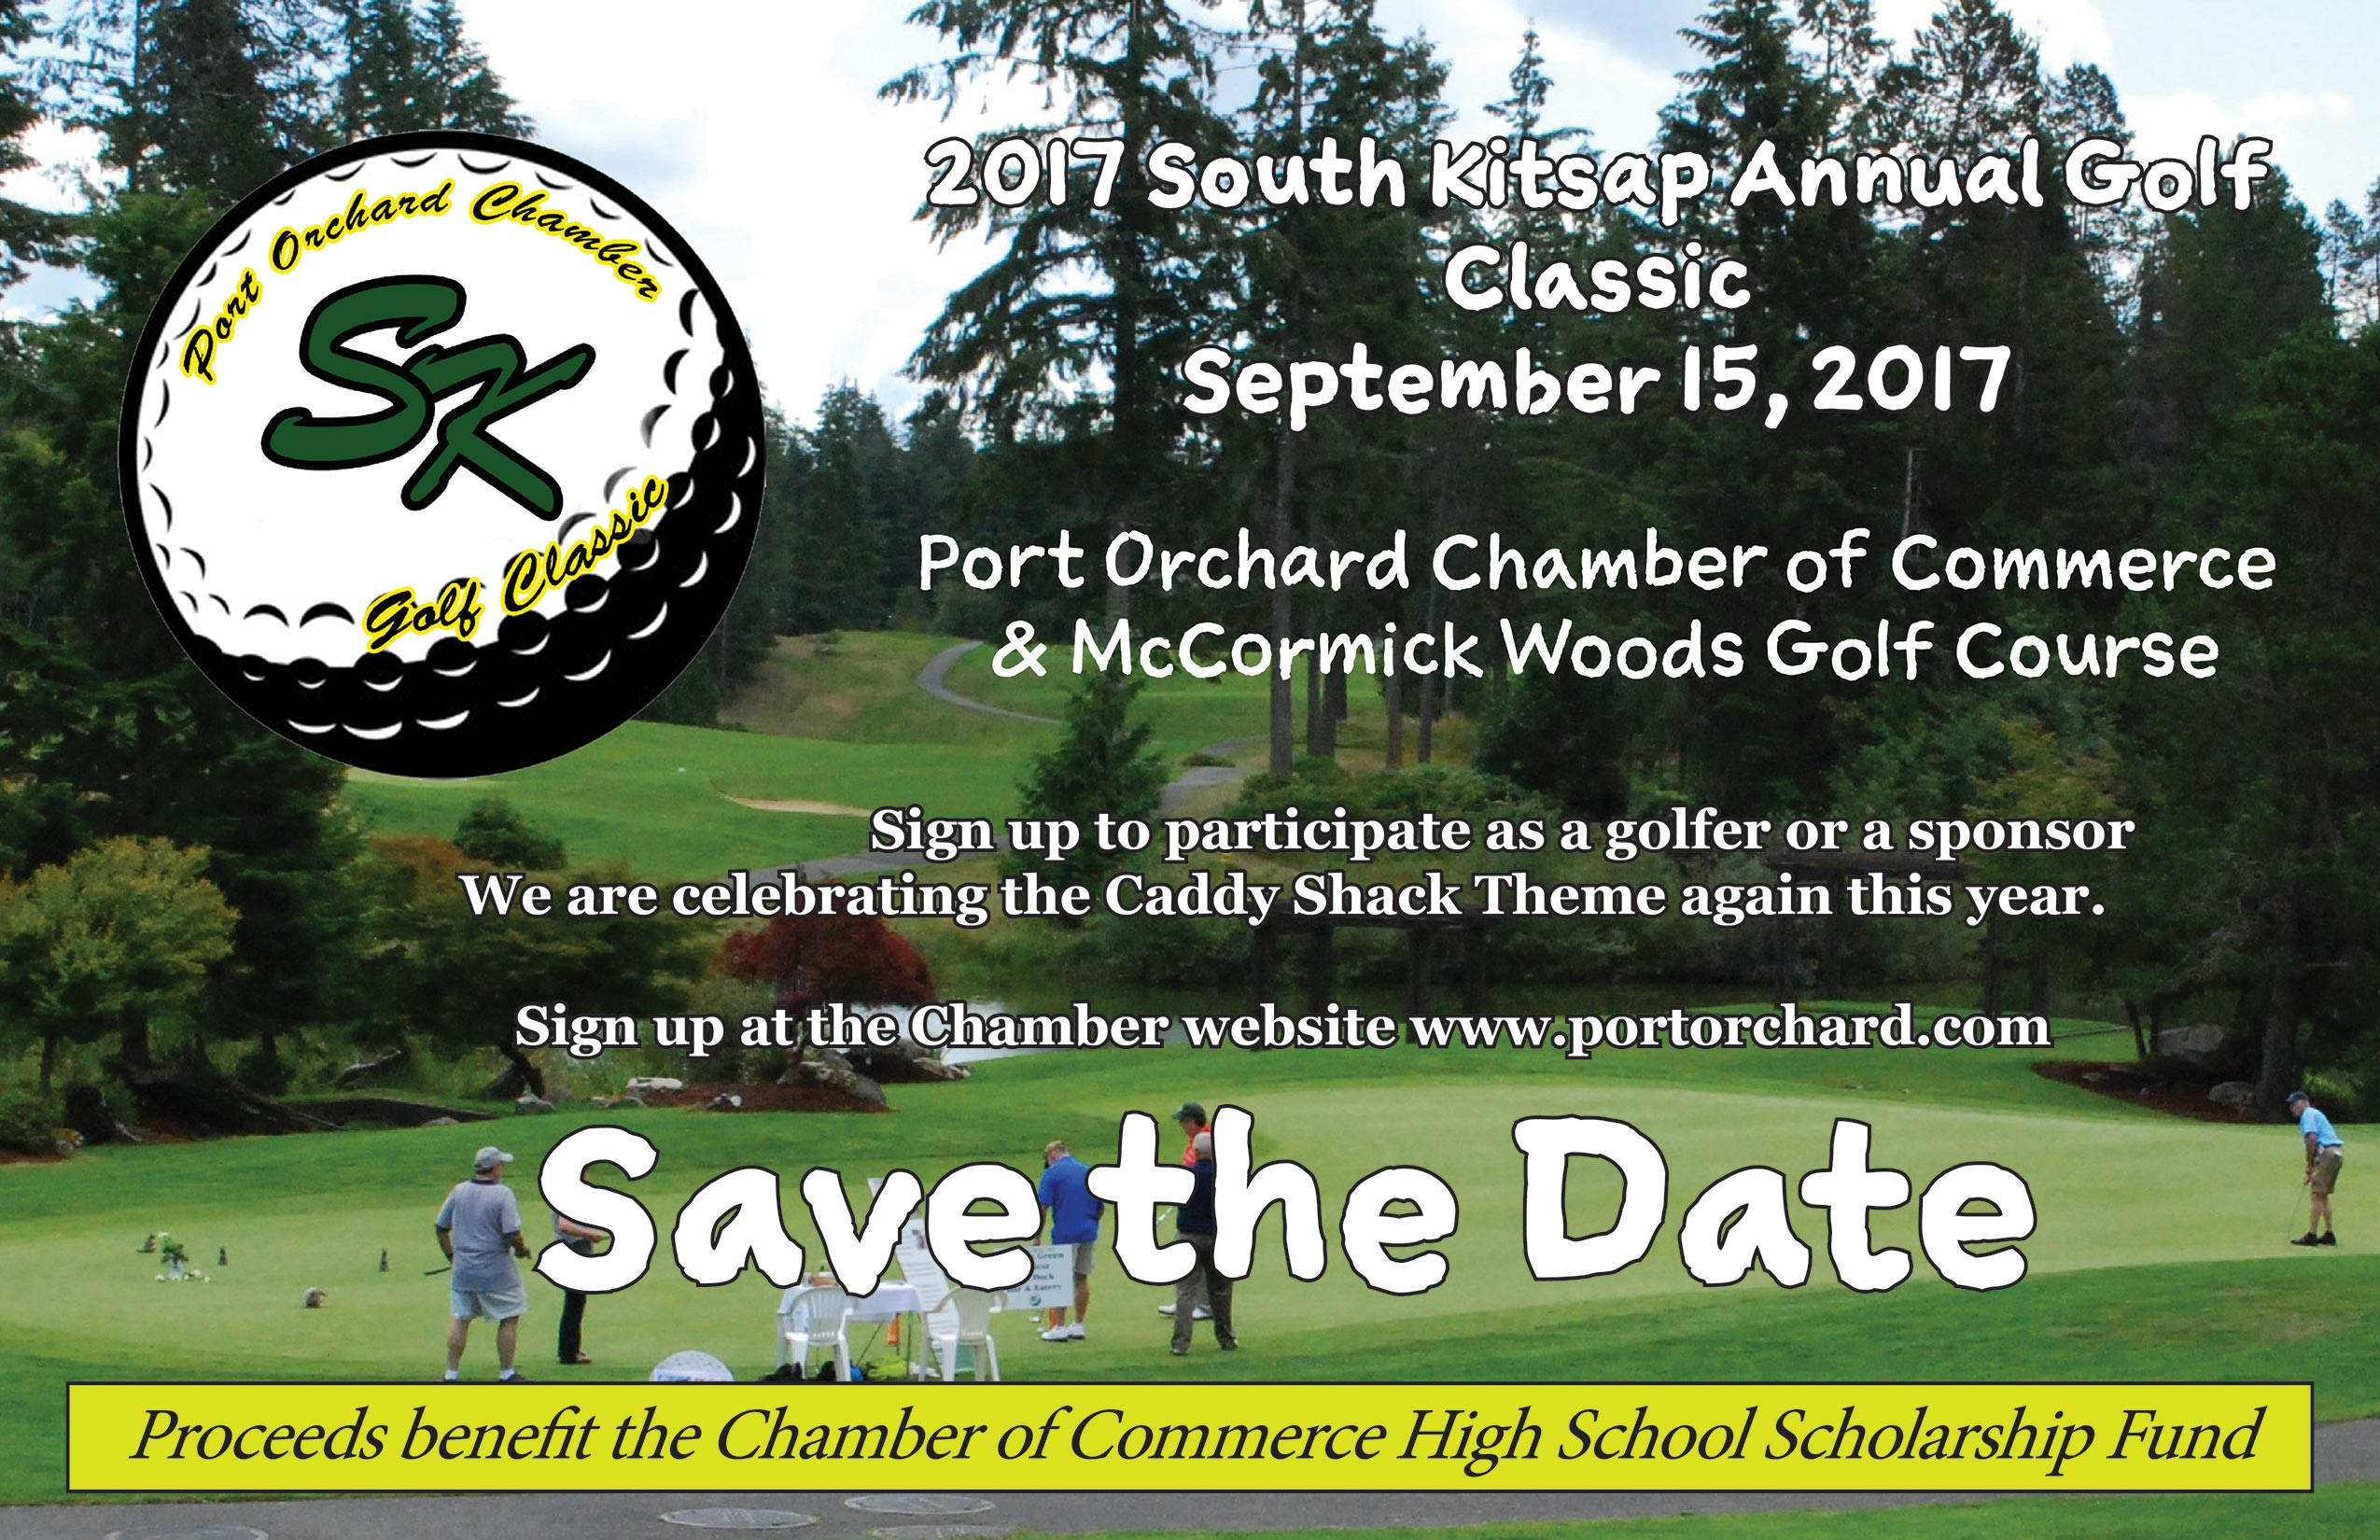 South Kitsap Golf Classic